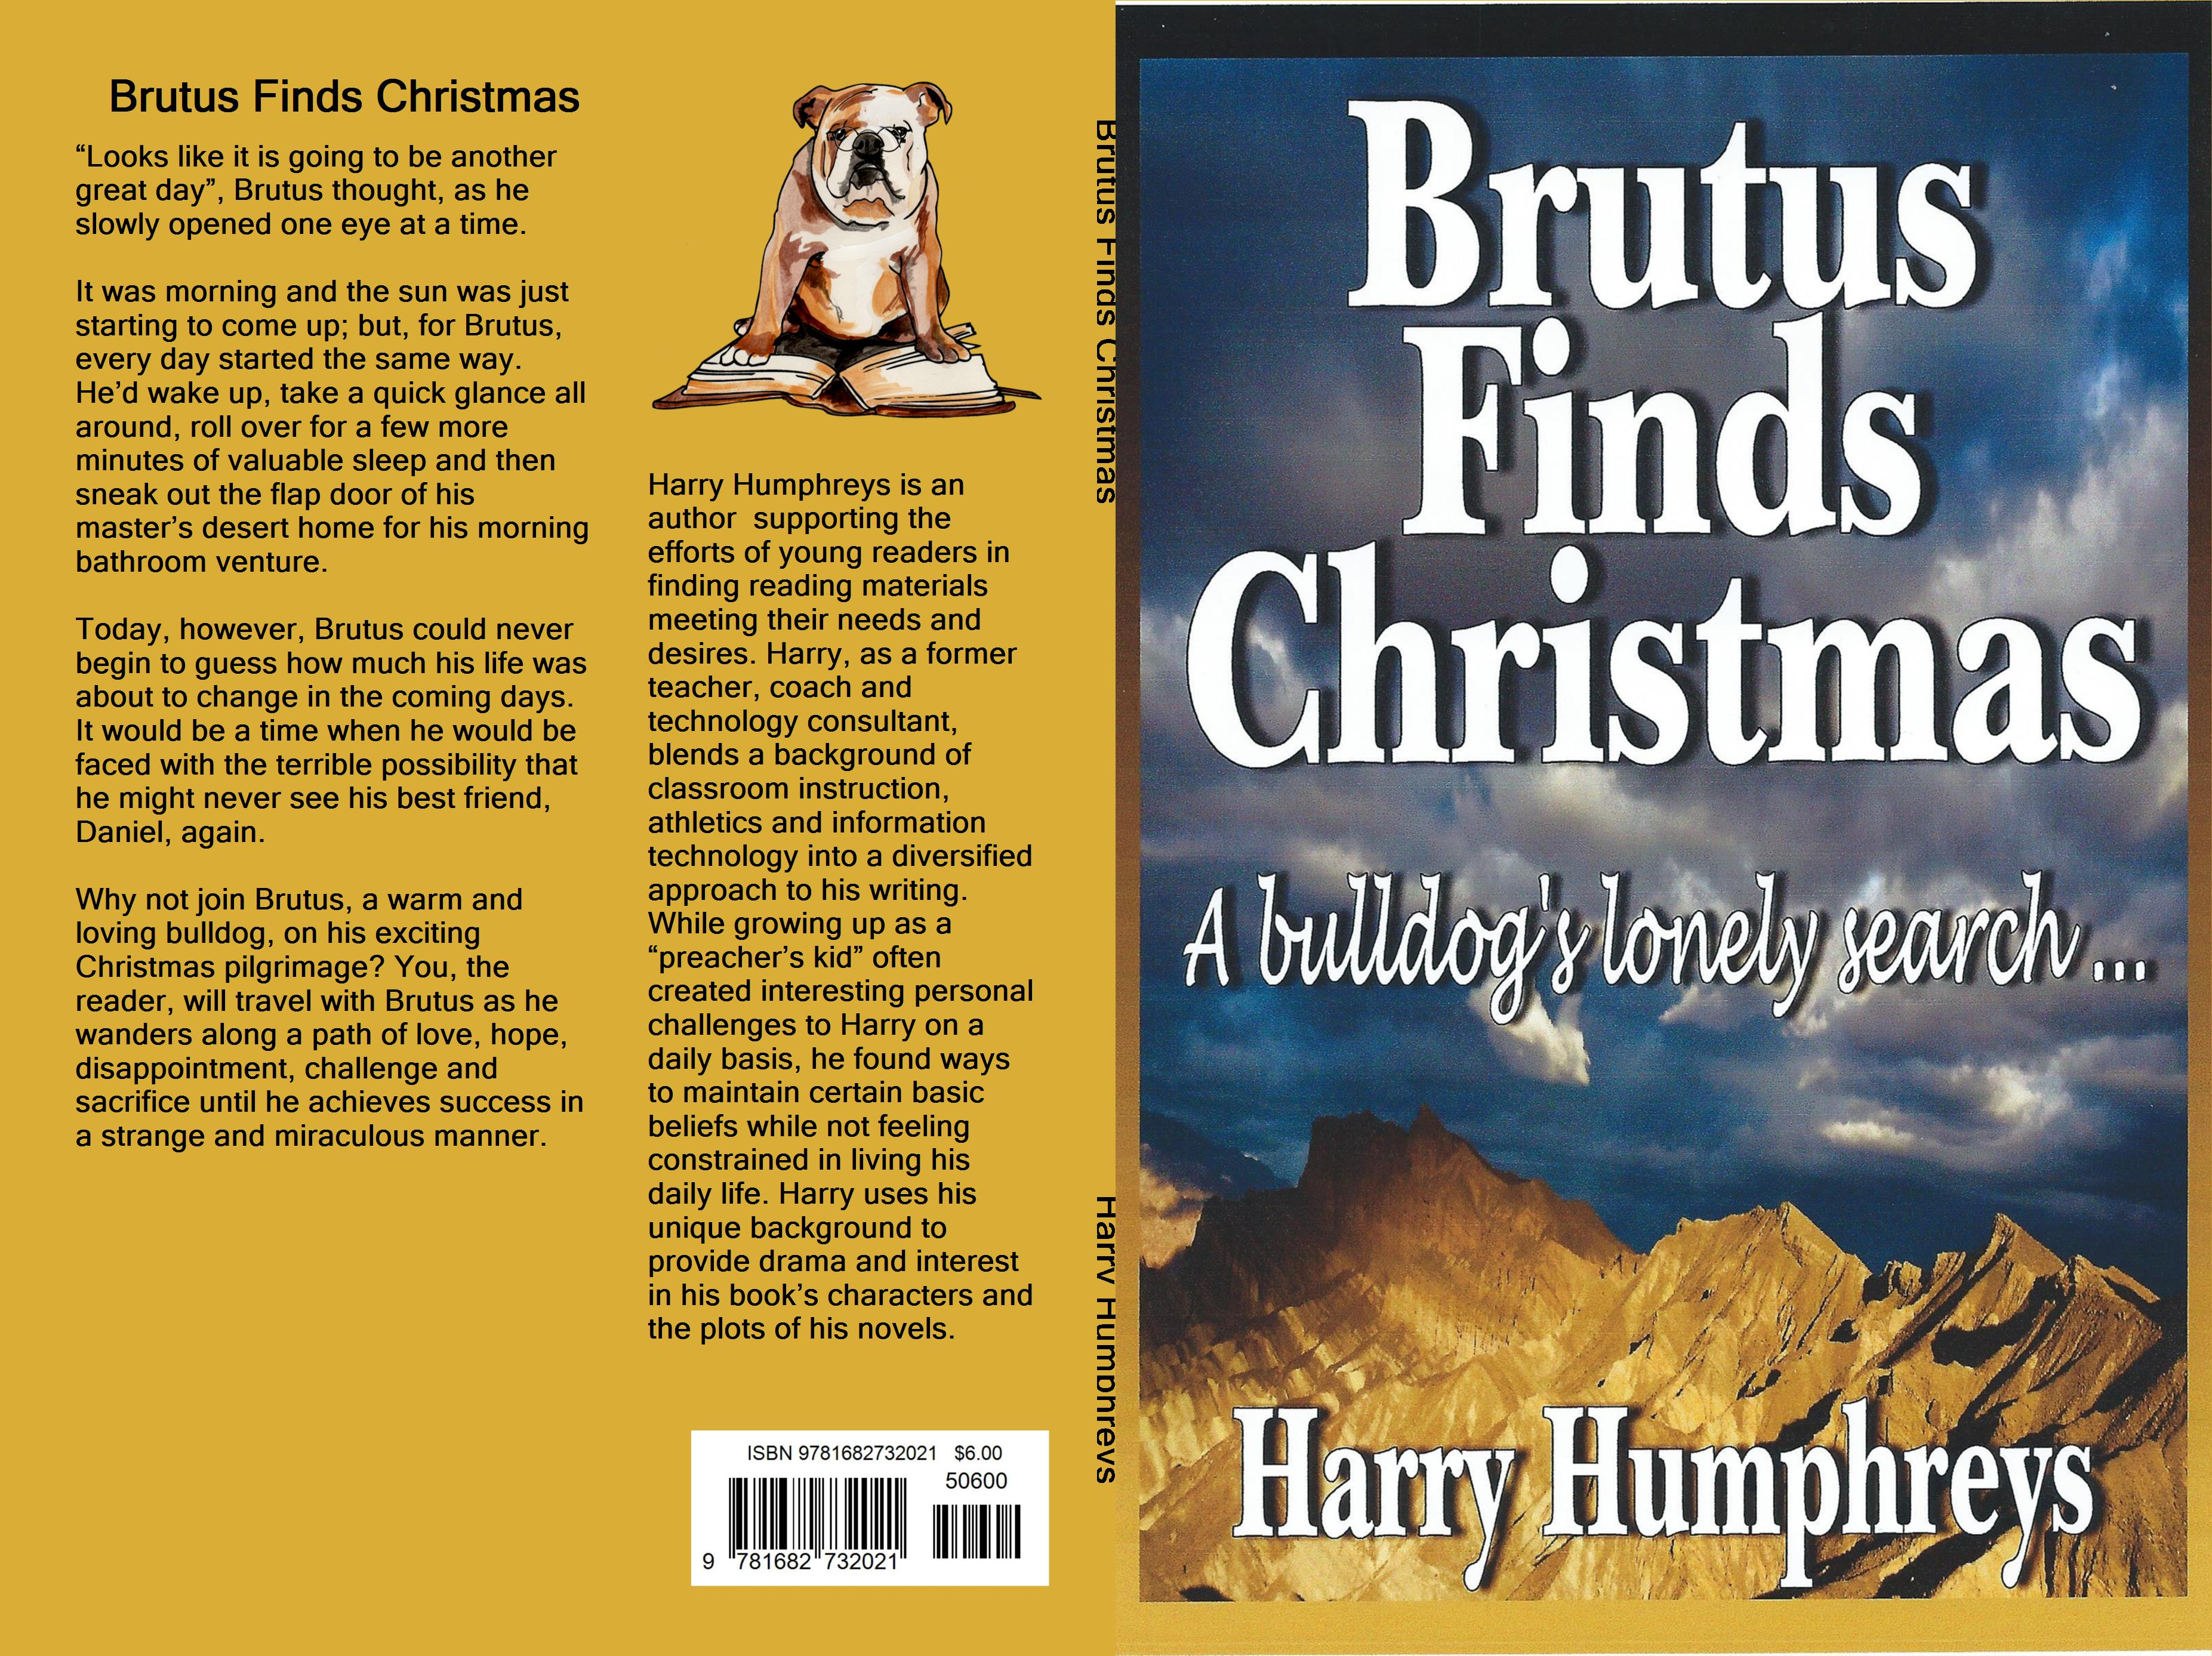 Brutus Finds Christmas cover image